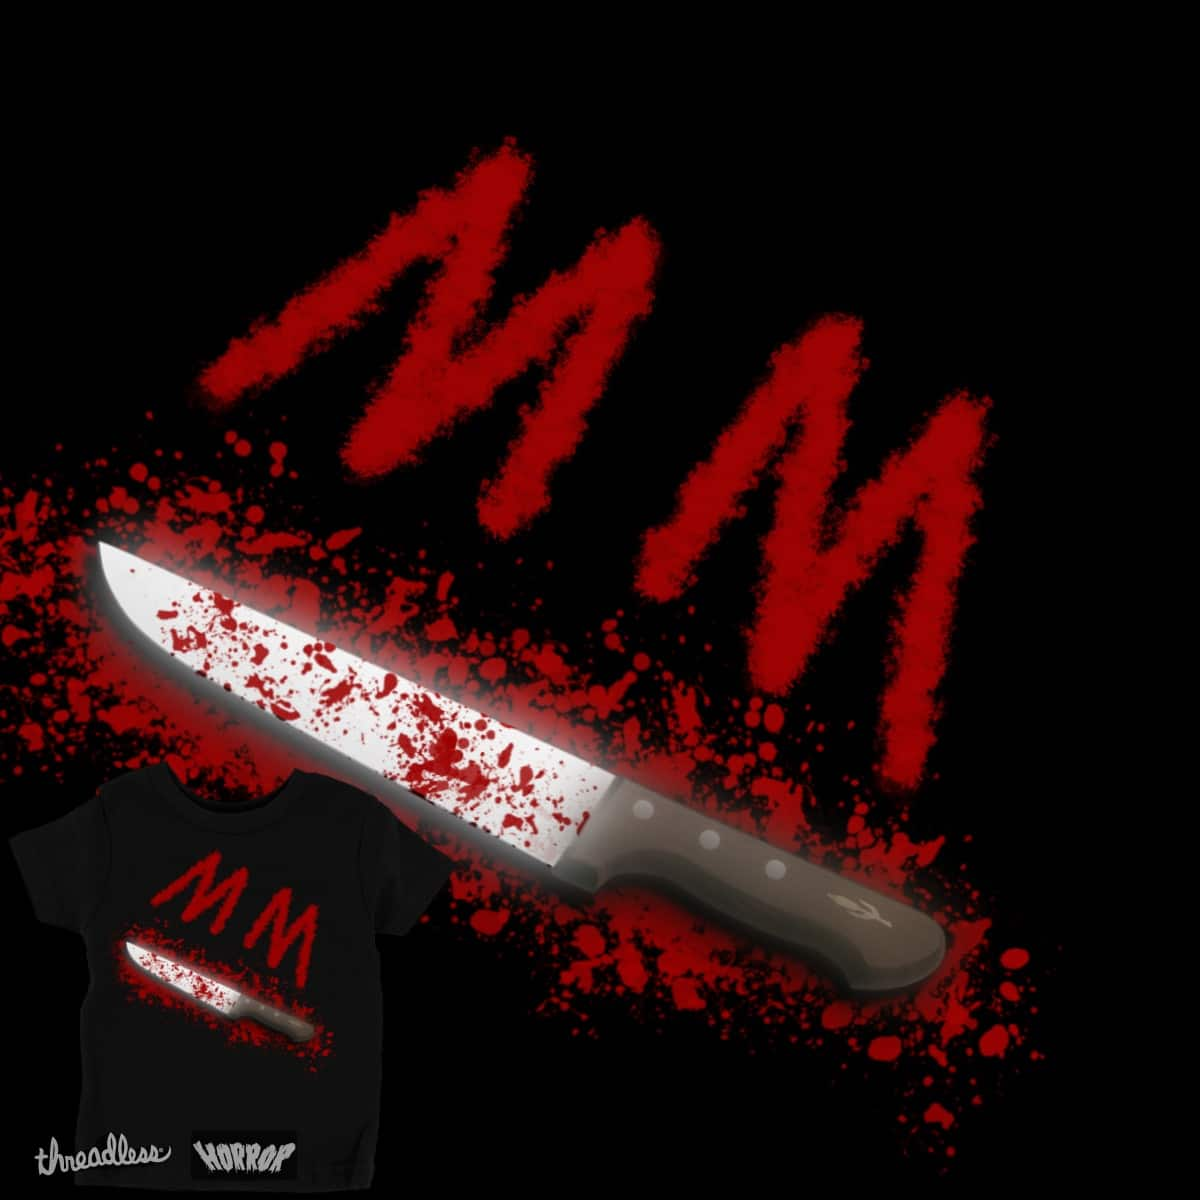 MM's Butcher Knife by NLHammer on Threadless